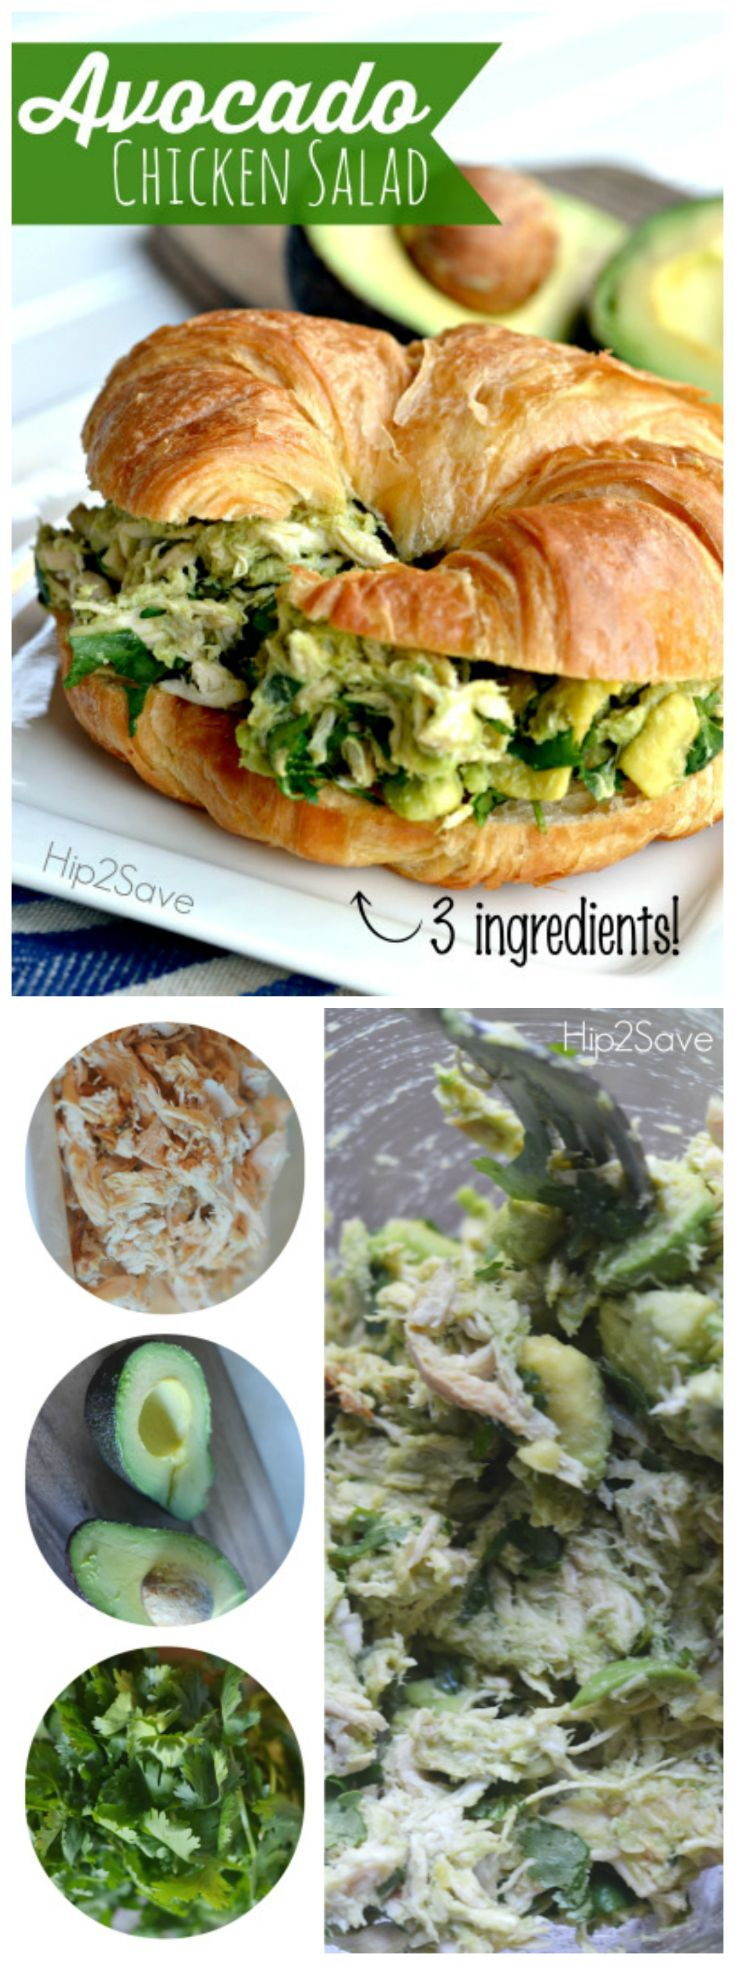 This 3 Ingredient Avocado Chicken Salad Recipe Will Delight Your Taste Buds Healthy And D Avocado Chicken Salad Recipe Avocado Recipes Stuffed Avocado Healthy